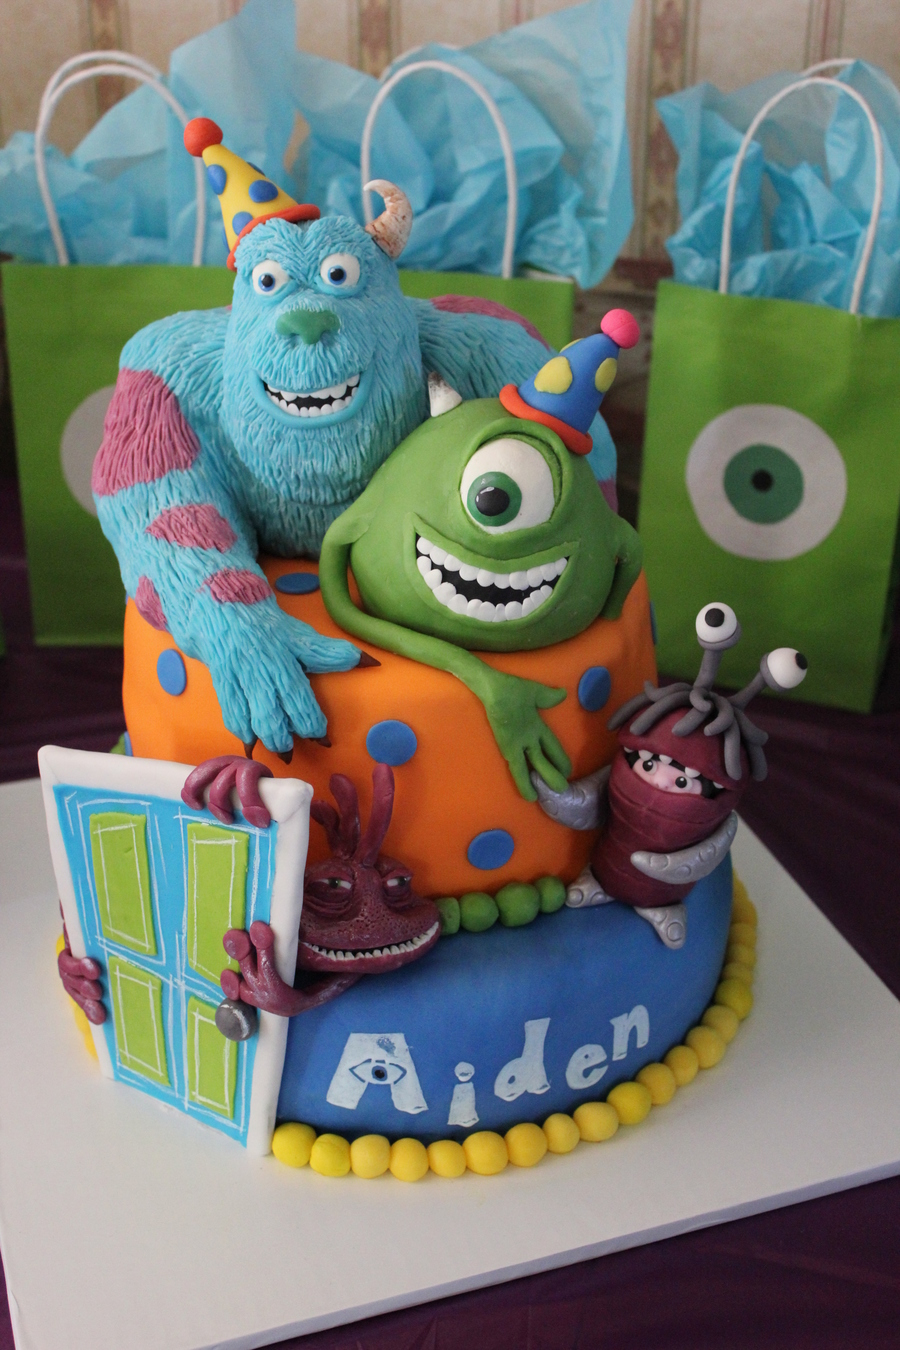 I Love Monsters Inc And So Does My Nephew I Sculpted Sulley From Cereal Treats And Modeling Chocolate Mike Was Sculpted By My Sister Wh on Cake Central